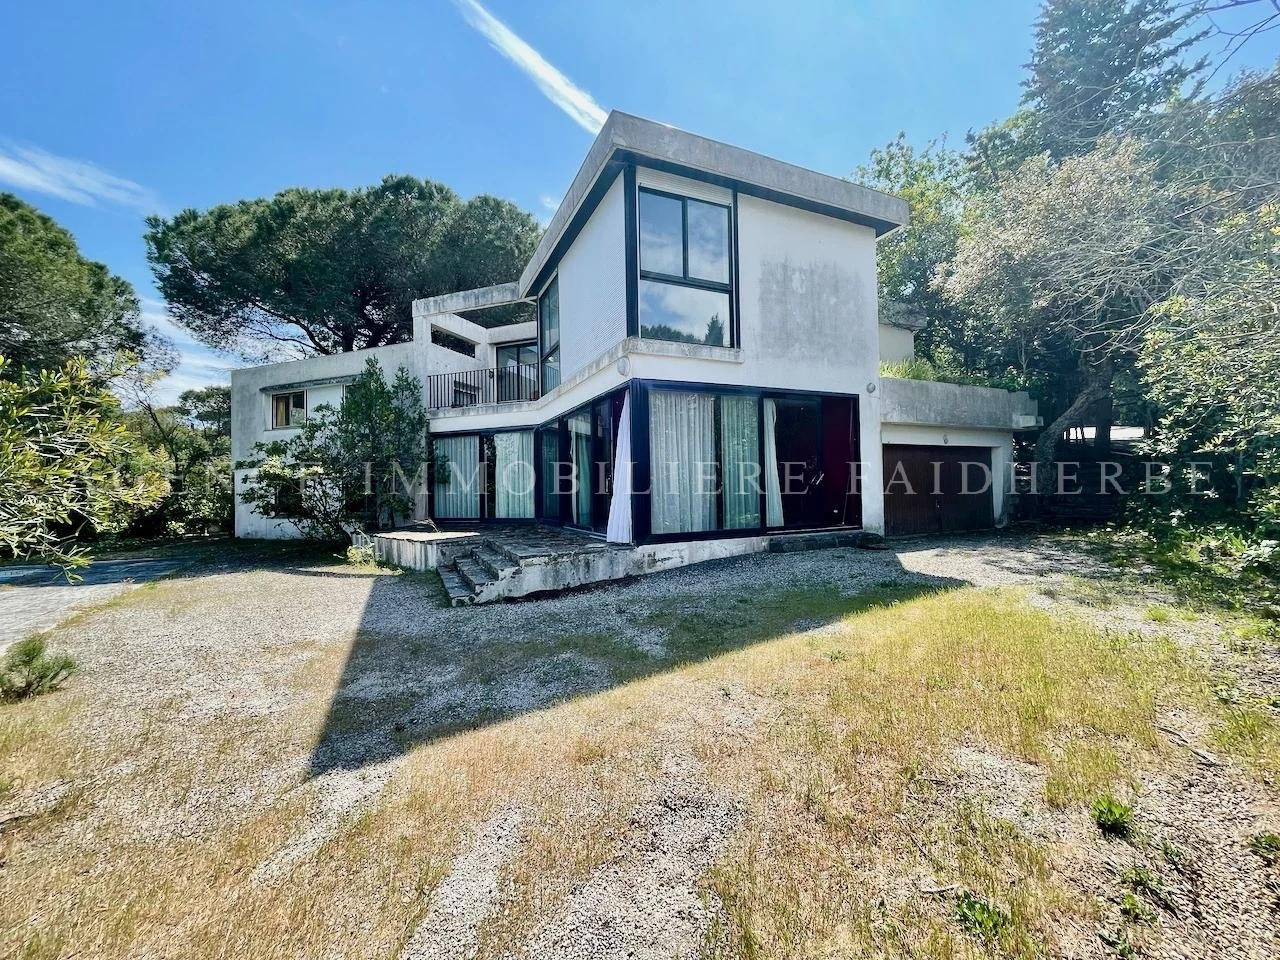 Architect house to renovate at walking distance from the beach